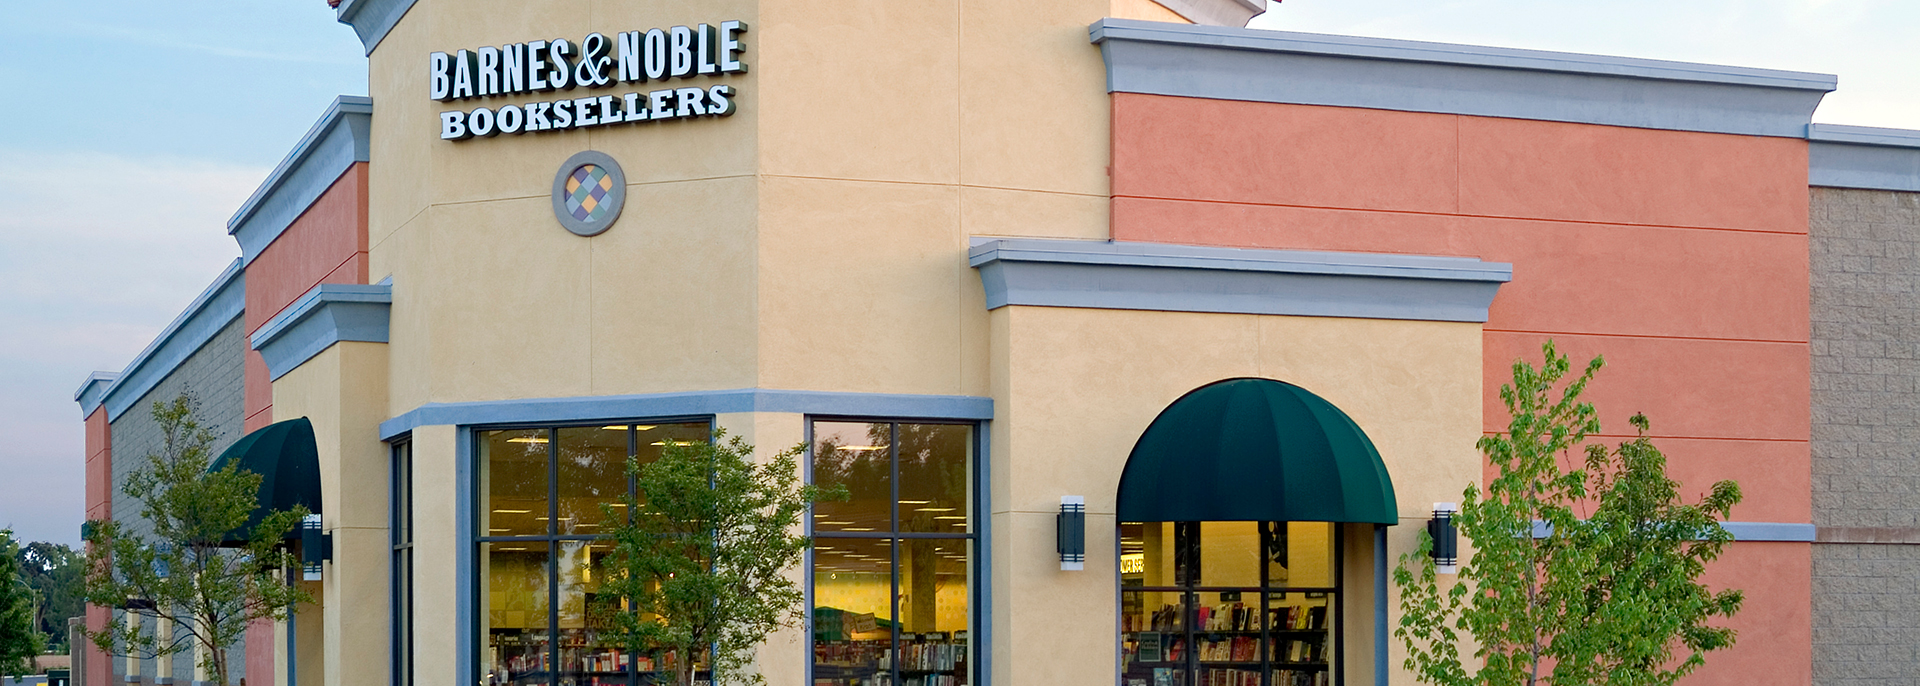 Barnes and Noble Booksellers building at Merced Marketplace